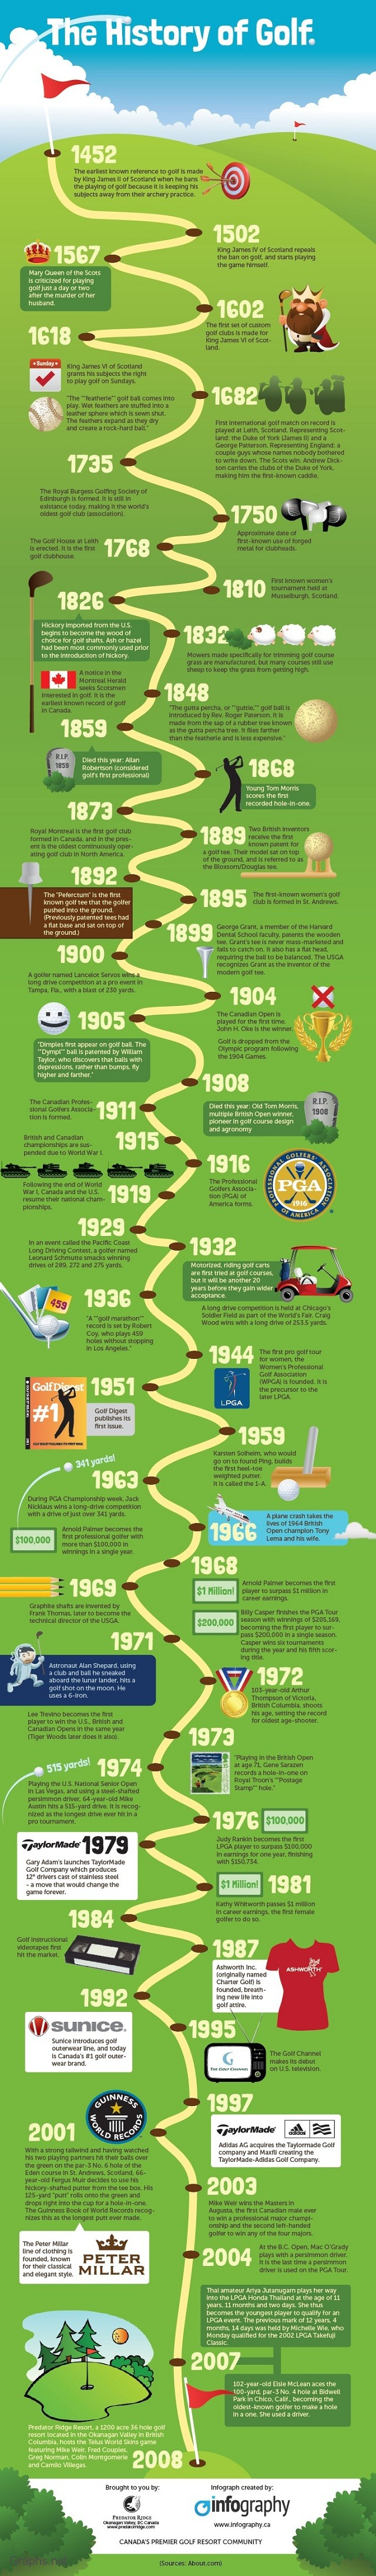 The history of golf